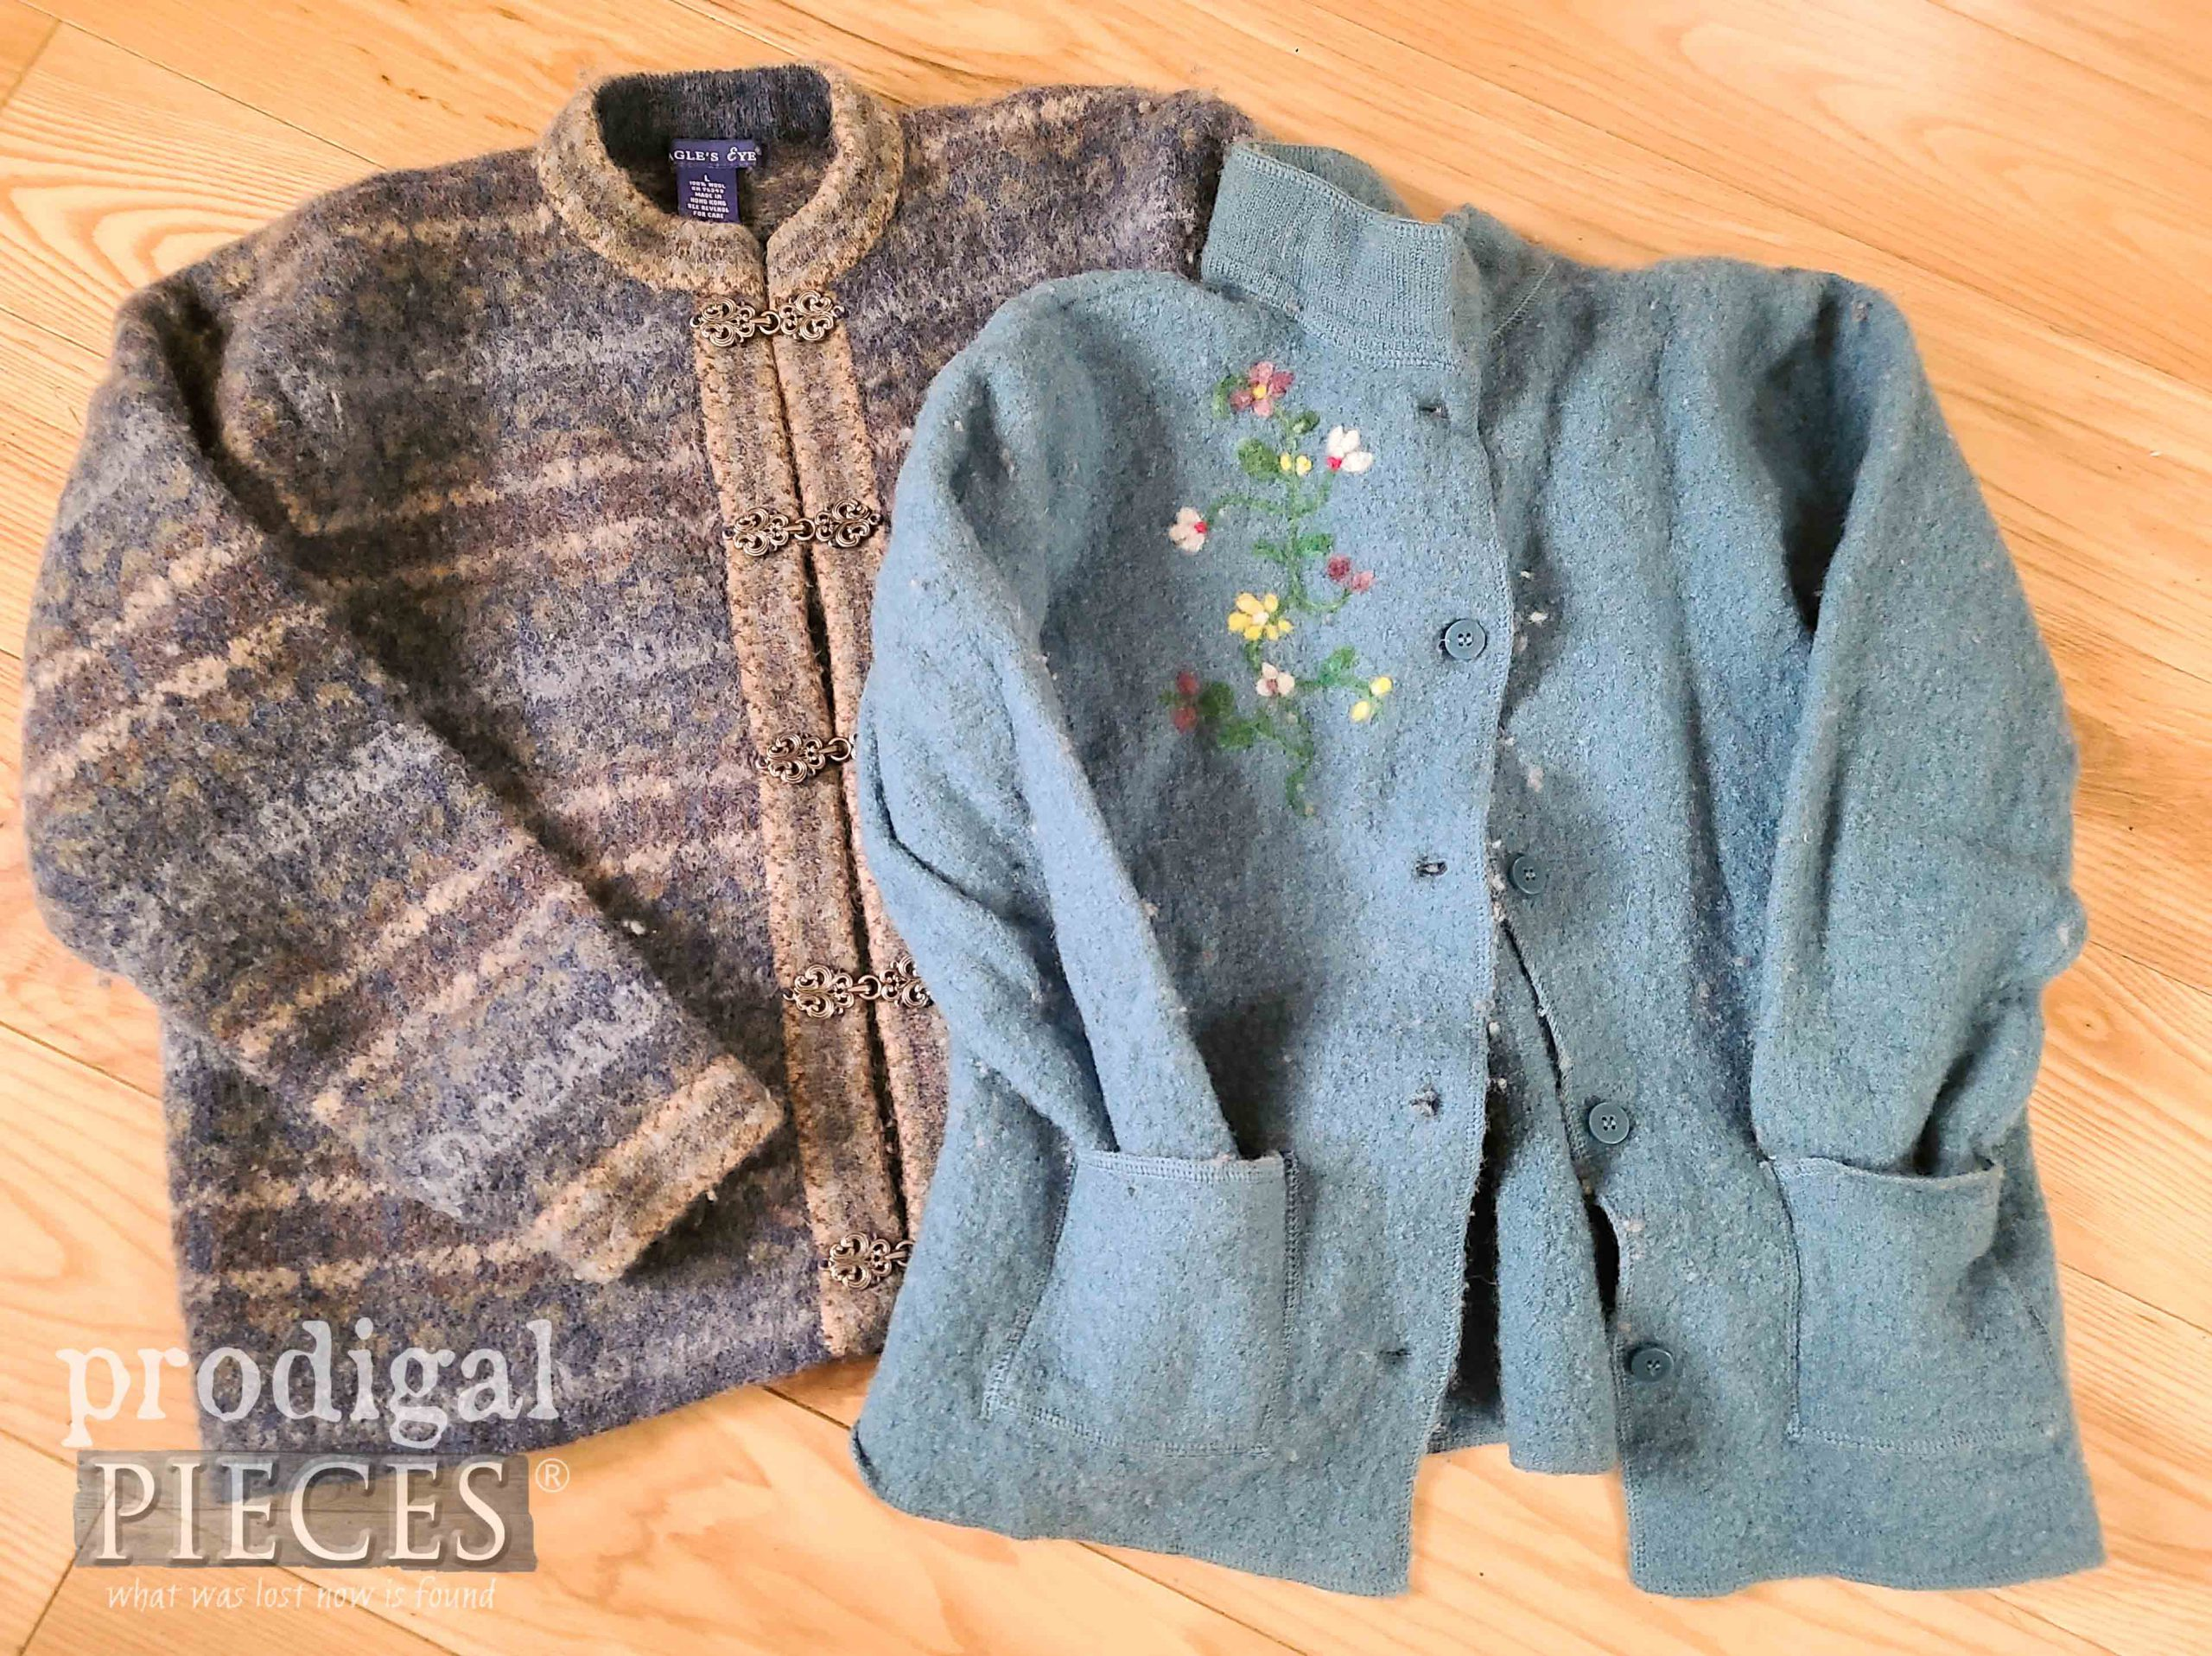 Felted Wool Sweaters Before Upcycle by Larissa of Prodigal Pieces | prodigalpieces.com #prodigalpieces